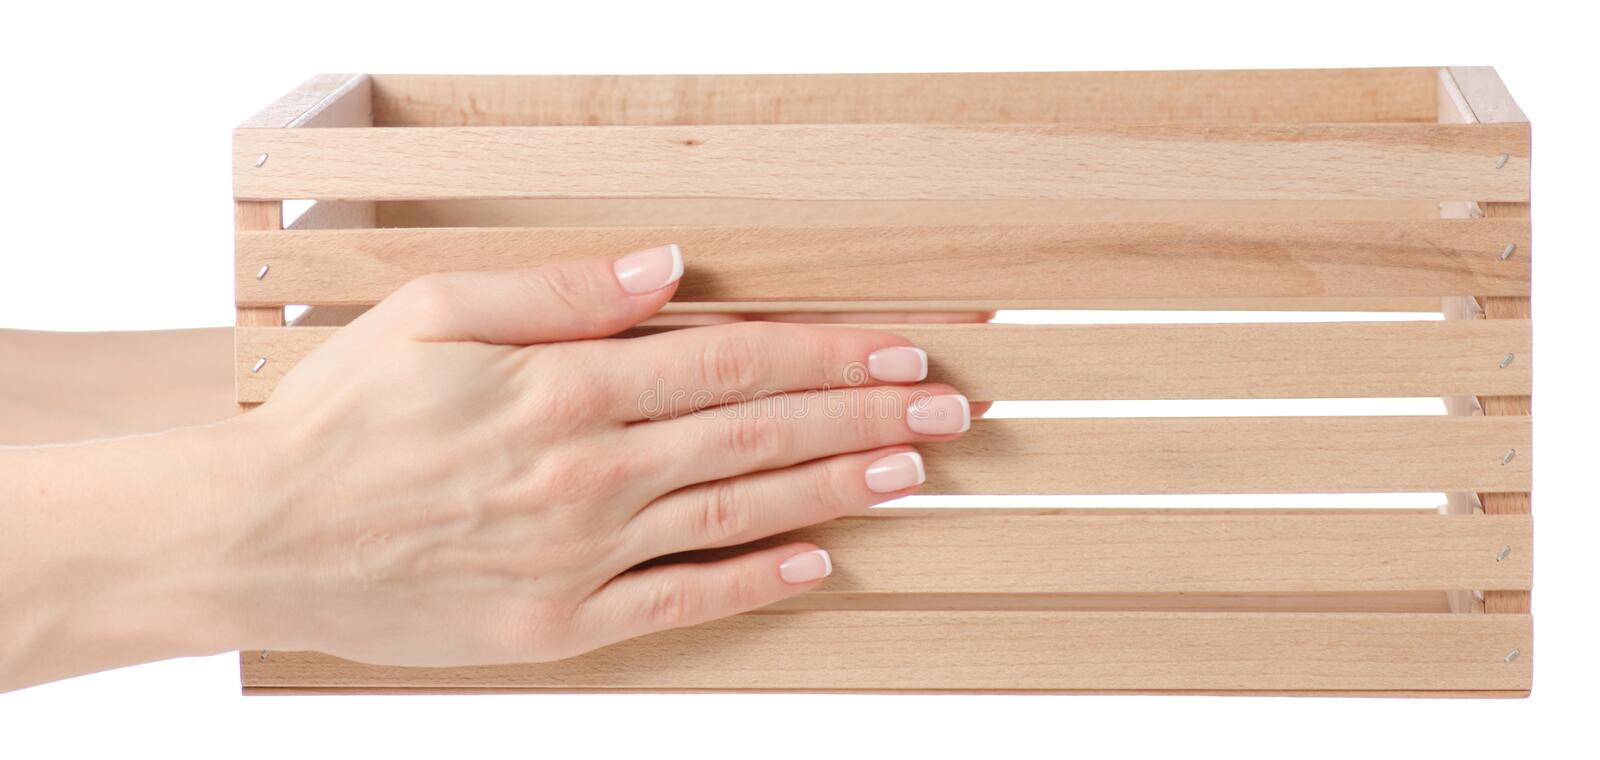 Wooden box in hand stock image